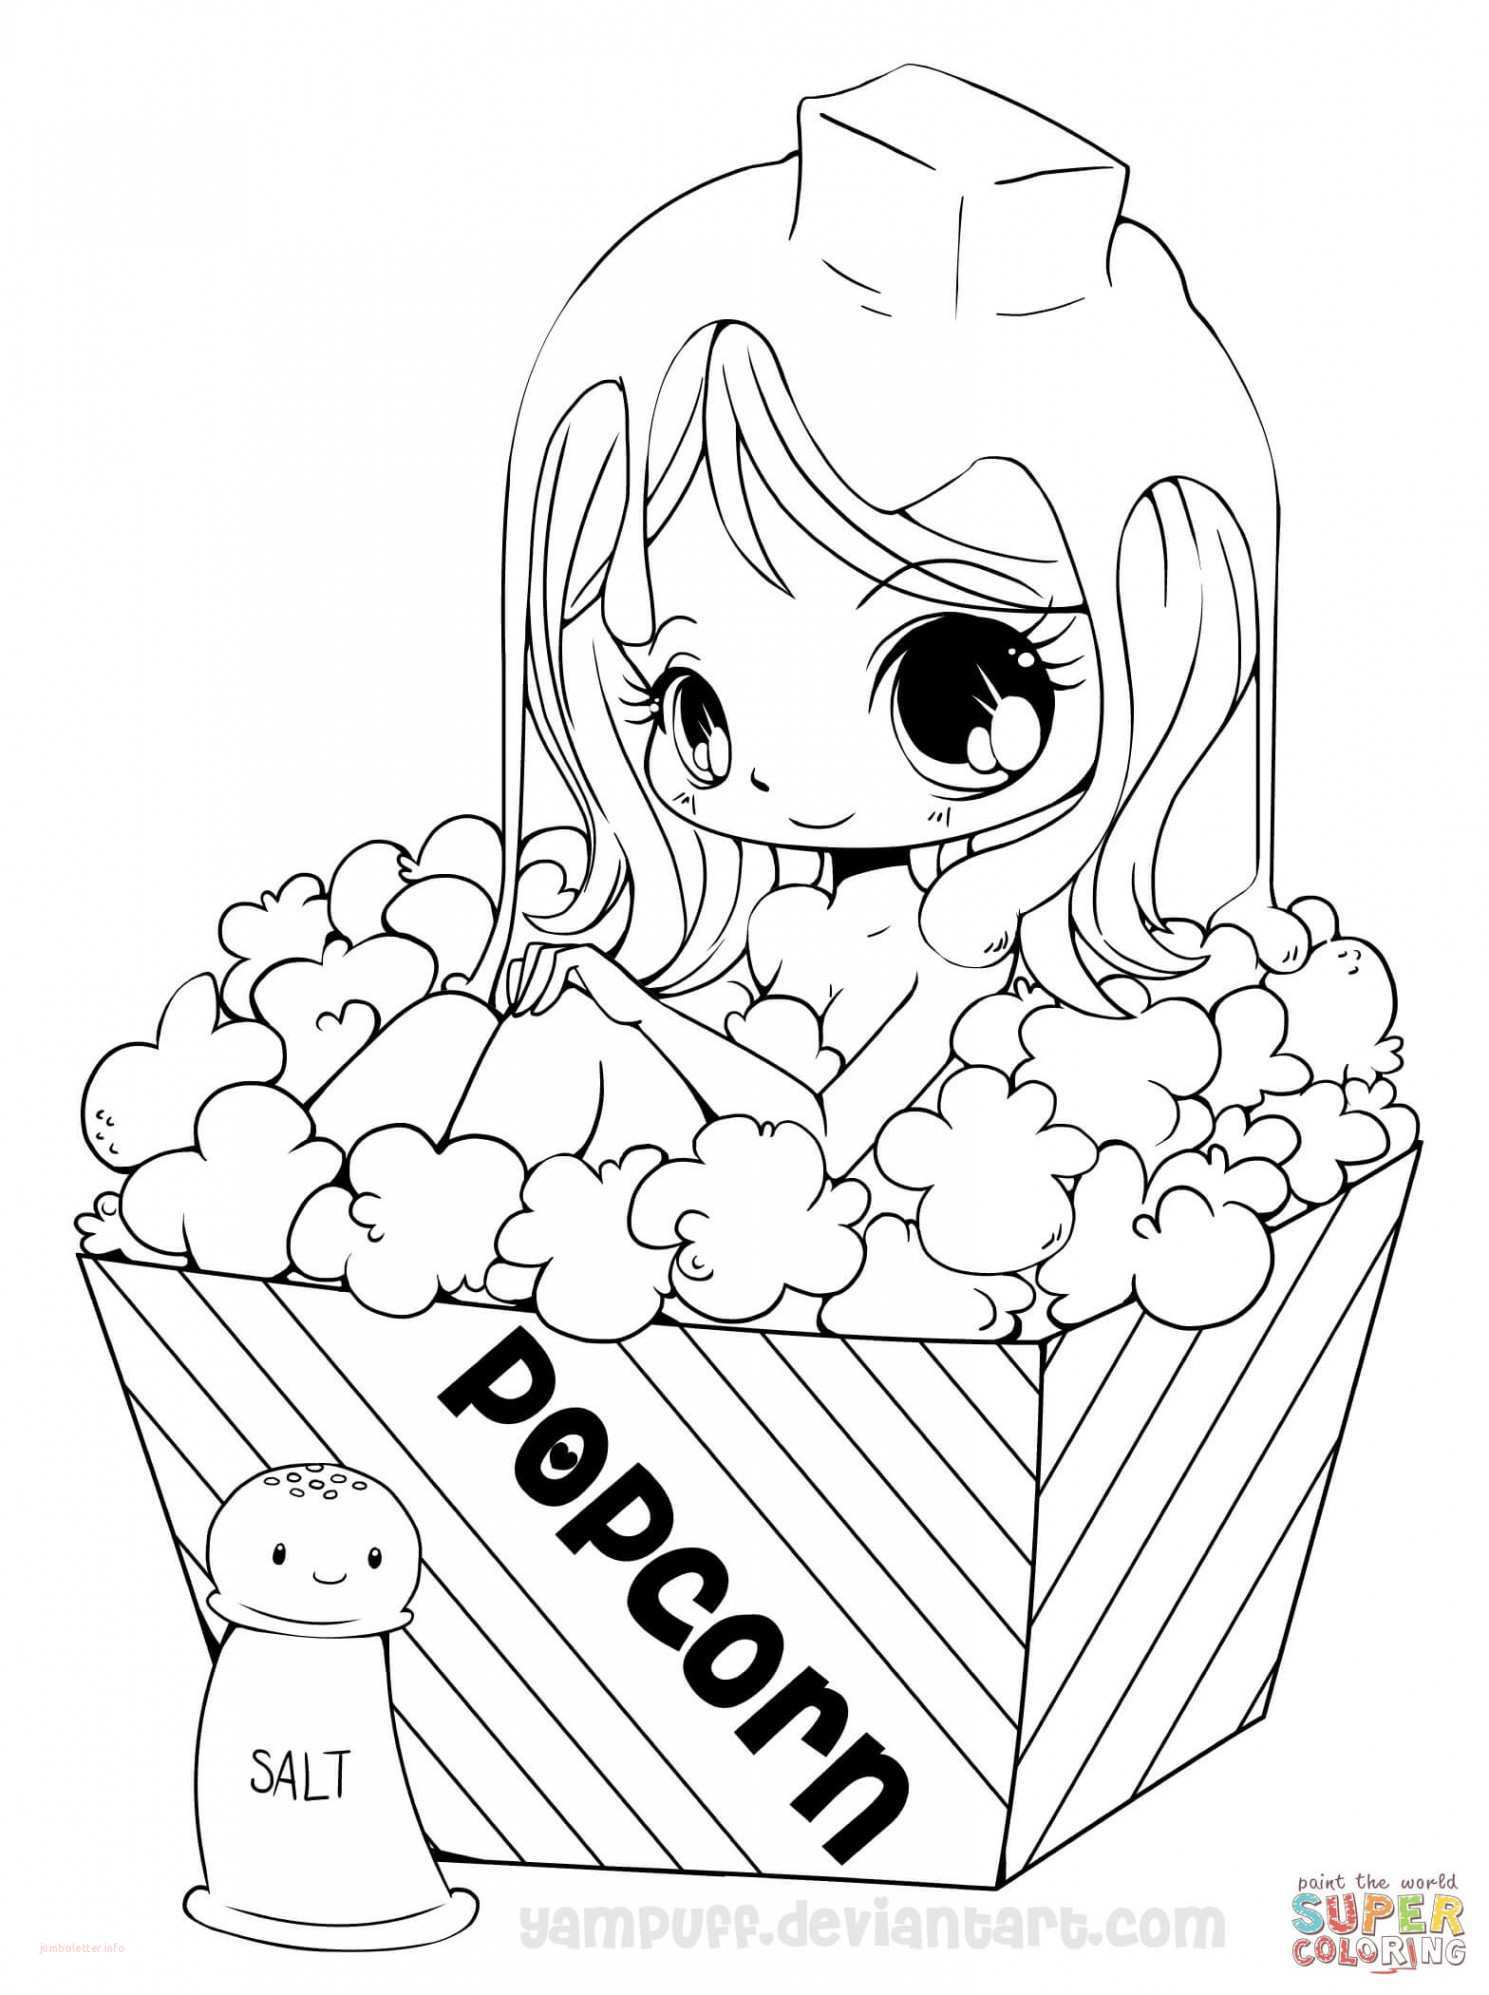 Light Bulb Coloring Page Light Bulb Coloring Page Luxury Anime Chibi Coloring Pages